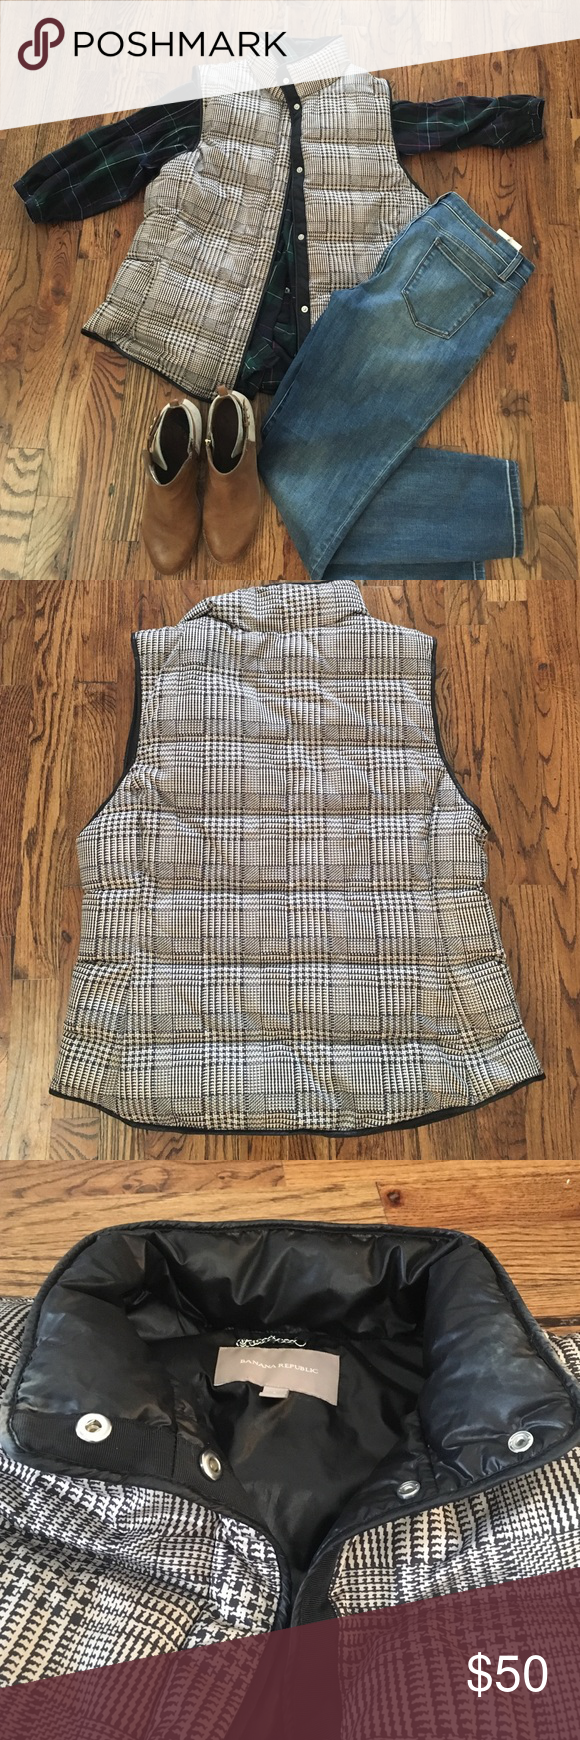 Houndstooth Puffer Vest. Banana Republic Size L Super trendy Houndstooth Puffer Vest from Banana Republic! Some makeup stains inside the neckline (shown) that aren't visible when worn unless you flip the collar down. Over this is still in really great shape and has a lot of wear left. Only selling because I purchased the jcrew herringbone for this season. Banana Republic Jackets & Coats Vests